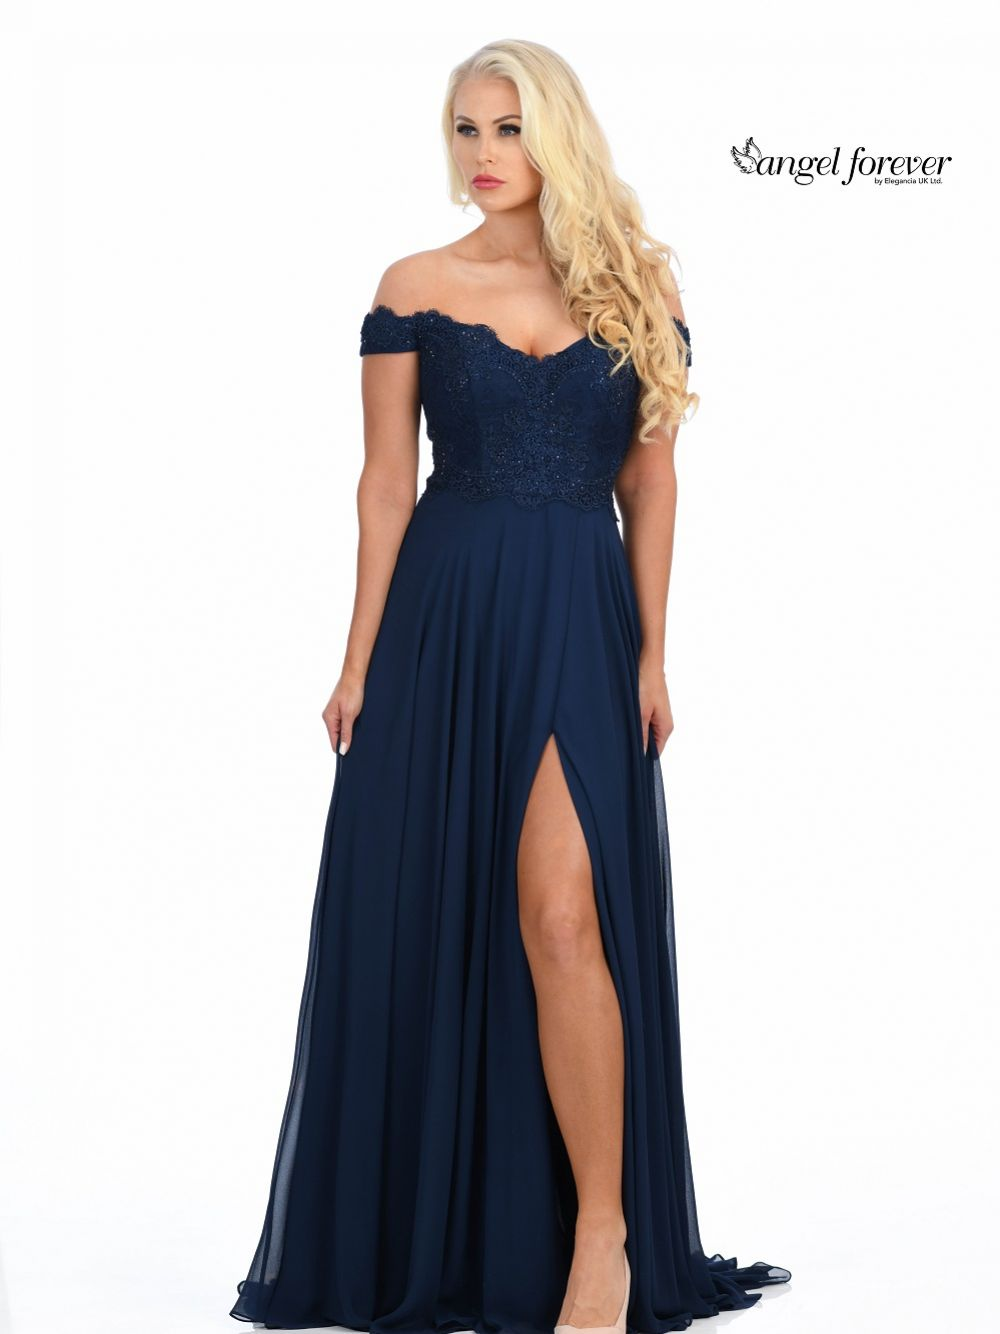 Angel Forever Off The Shoulder Chiffon Prom Dress with Lace Bodice (Navy)